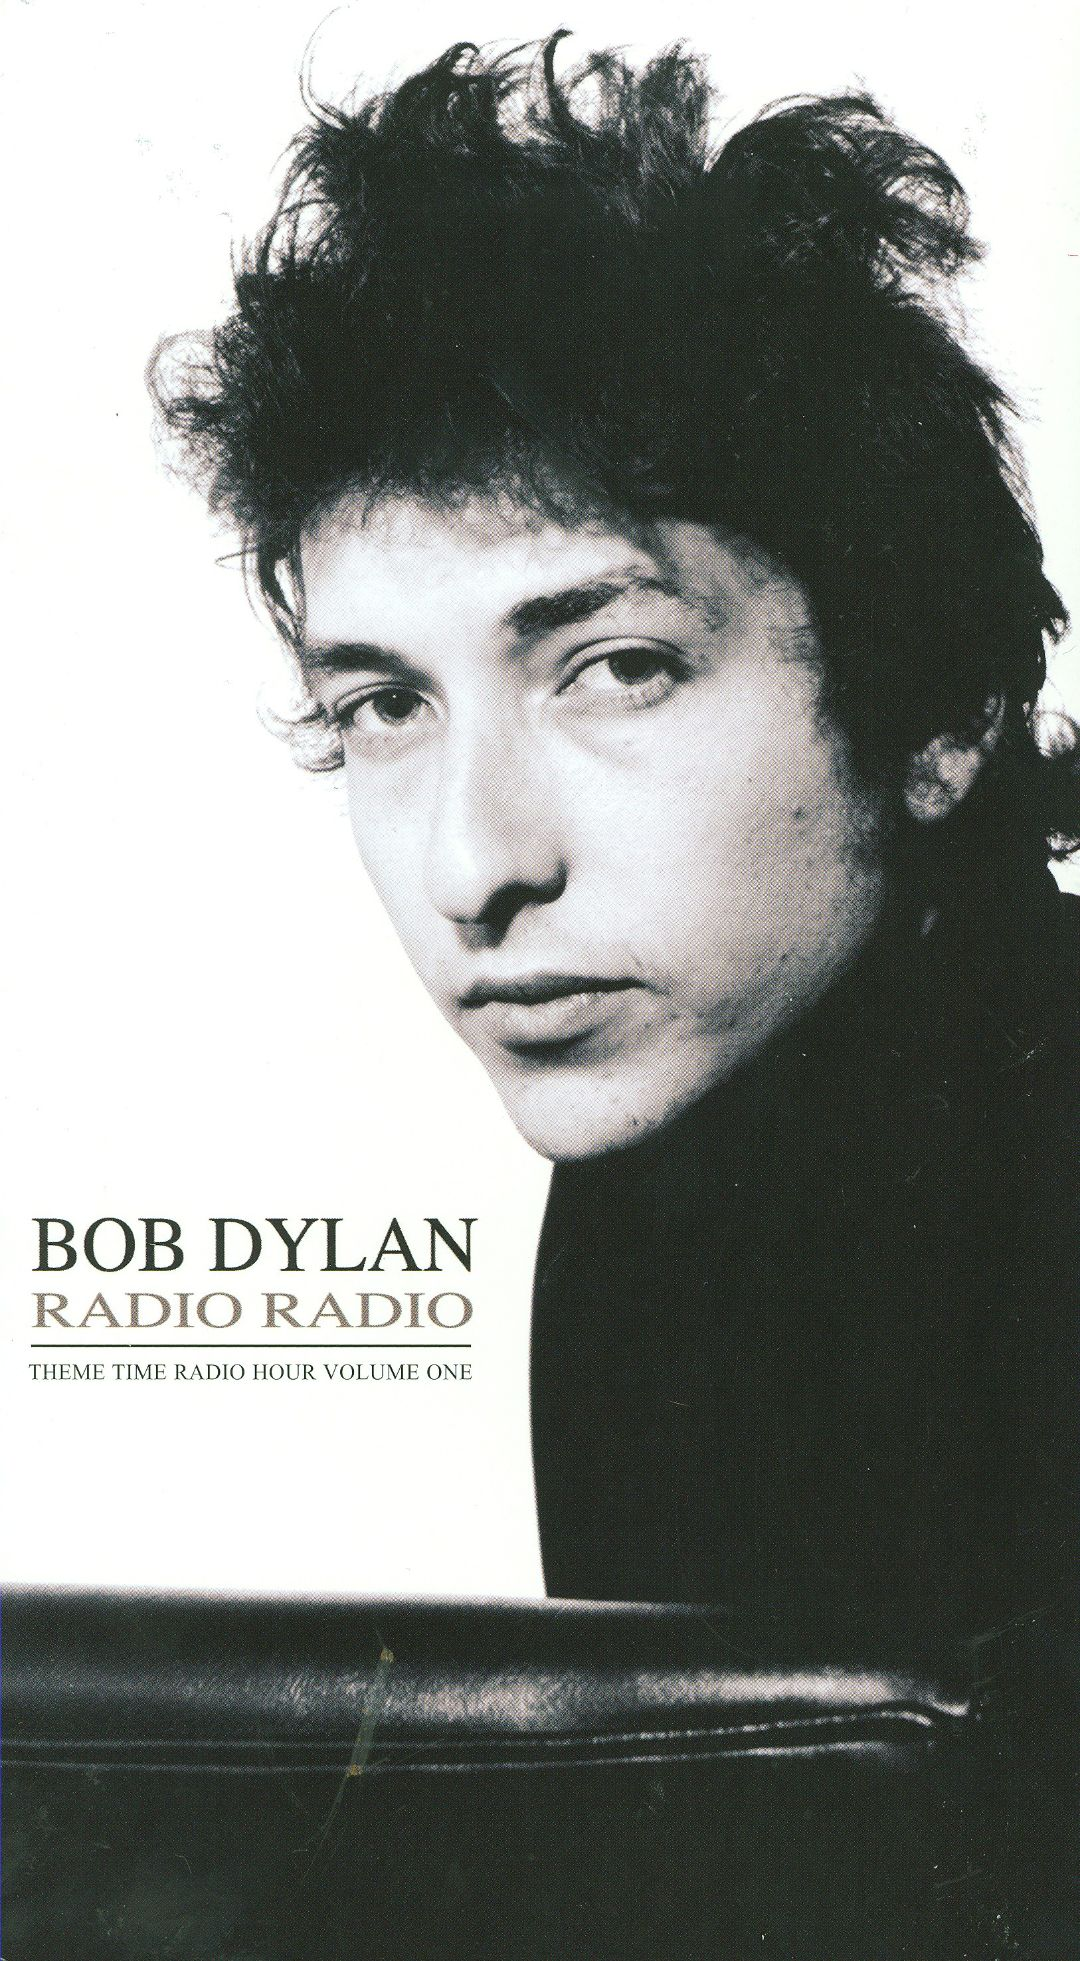 radio radio bob dylan 39 s theme time radio hour vol 1. Black Bedroom Furniture Sets. Home Design Ideas